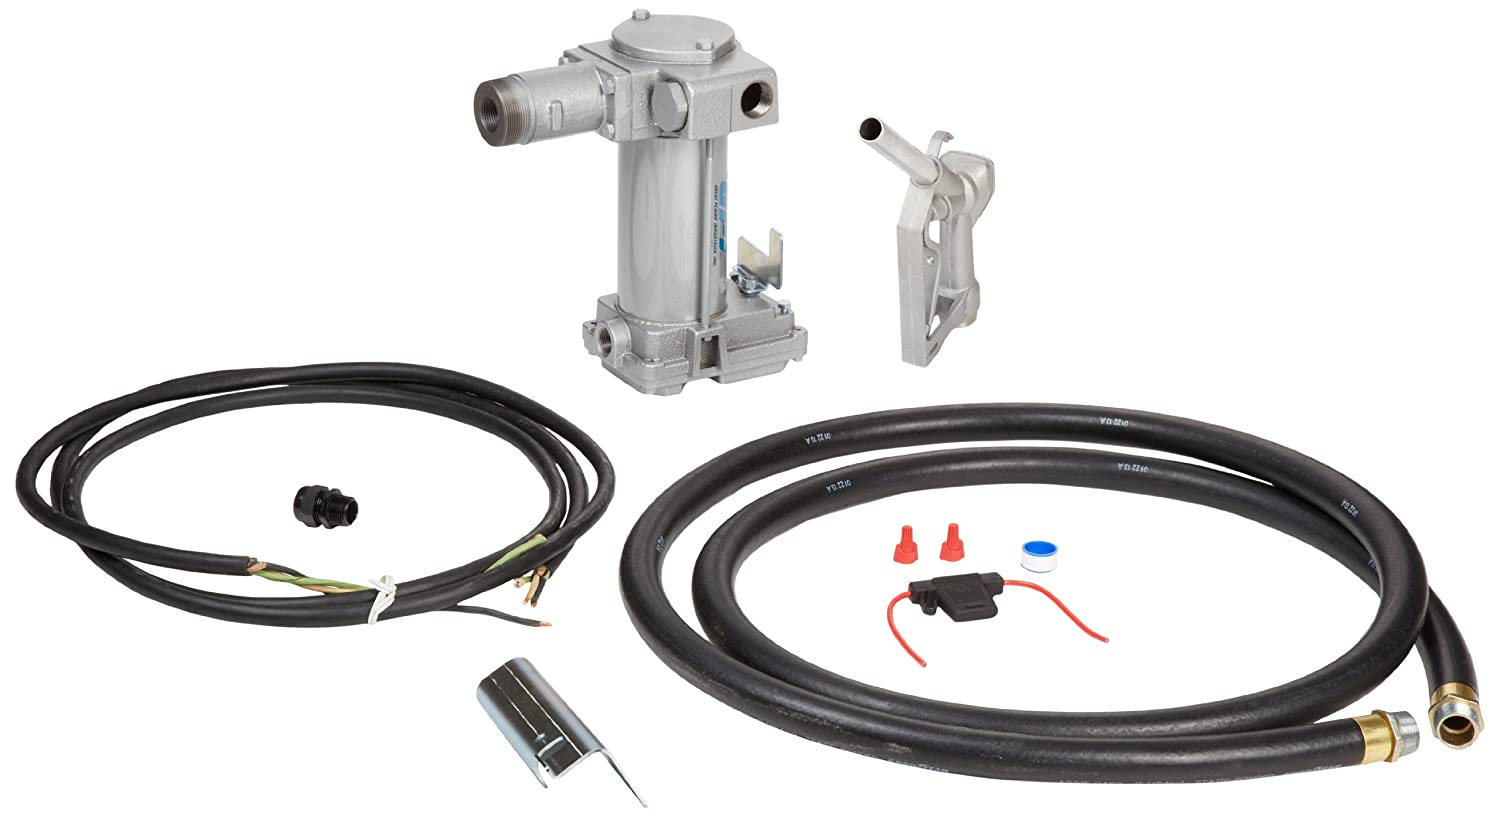 Gpi 133240 1 M 3025 Ml High Flow Cast Iron Fuel Pump Wiring Diagram Transfer 12 Vdc 25 Gpm Inch Npt X 18 Foot Hose Manual Leaded Nozzle